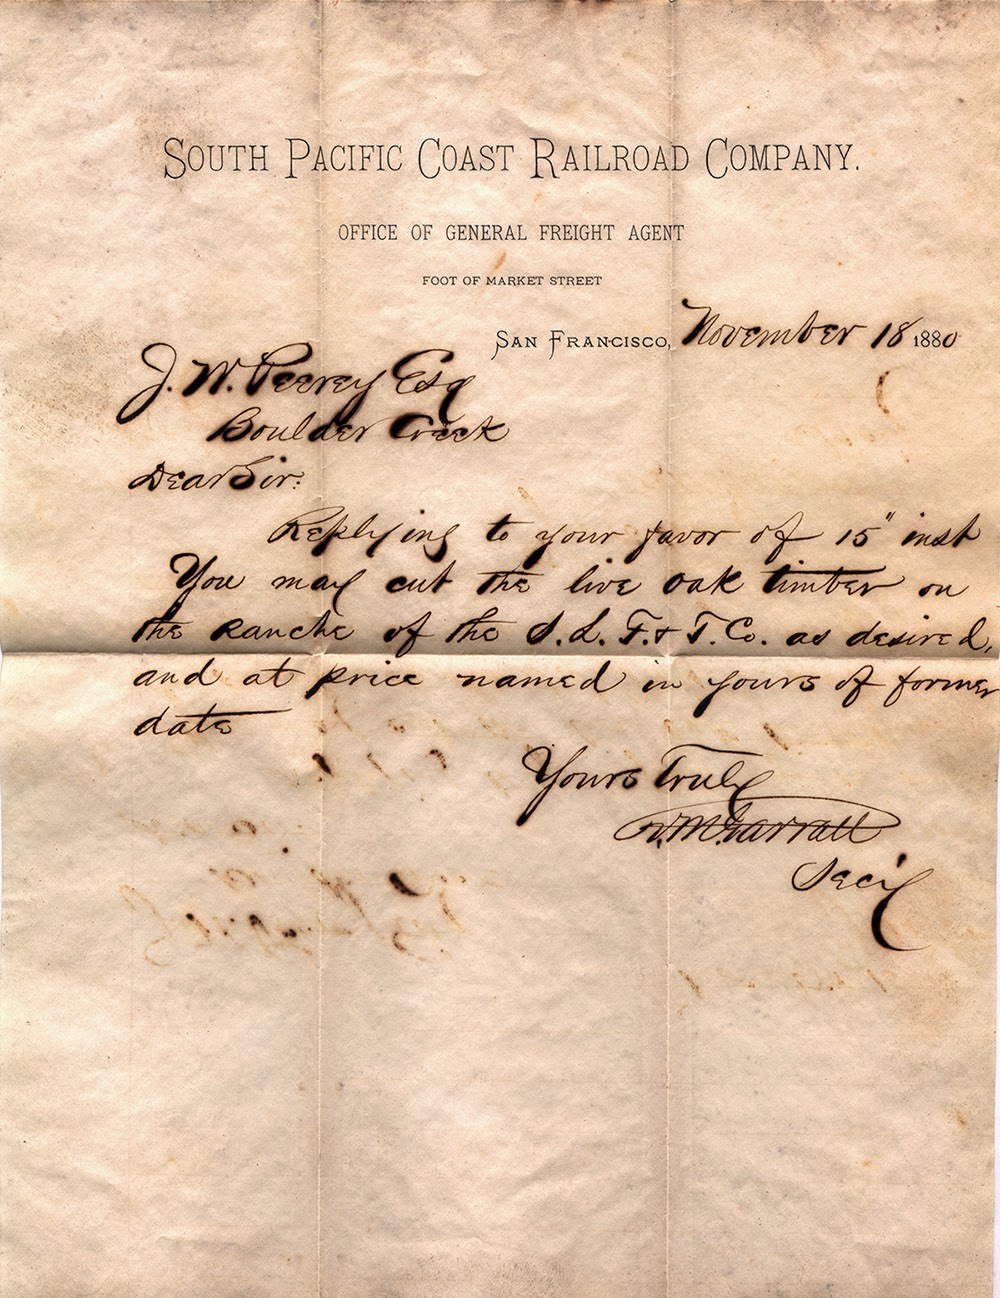 The letter is from the South Pacific Coast Railroad Company to lumberman, and founder of the town of Lorenzo, Joseph Peery.